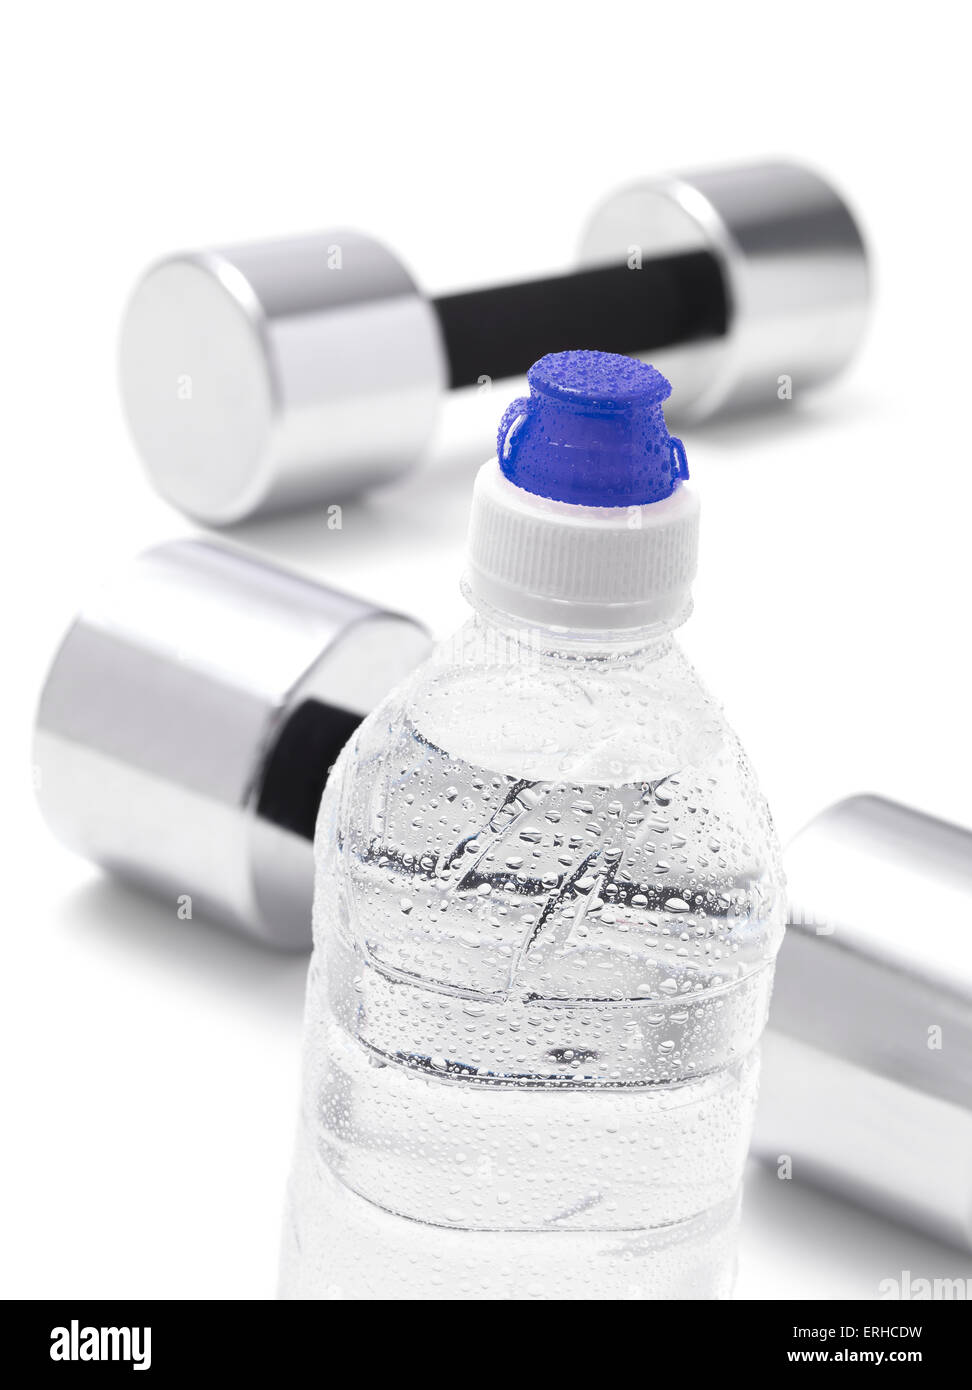 Gym Dumbbells with a water bottle - Stock Image